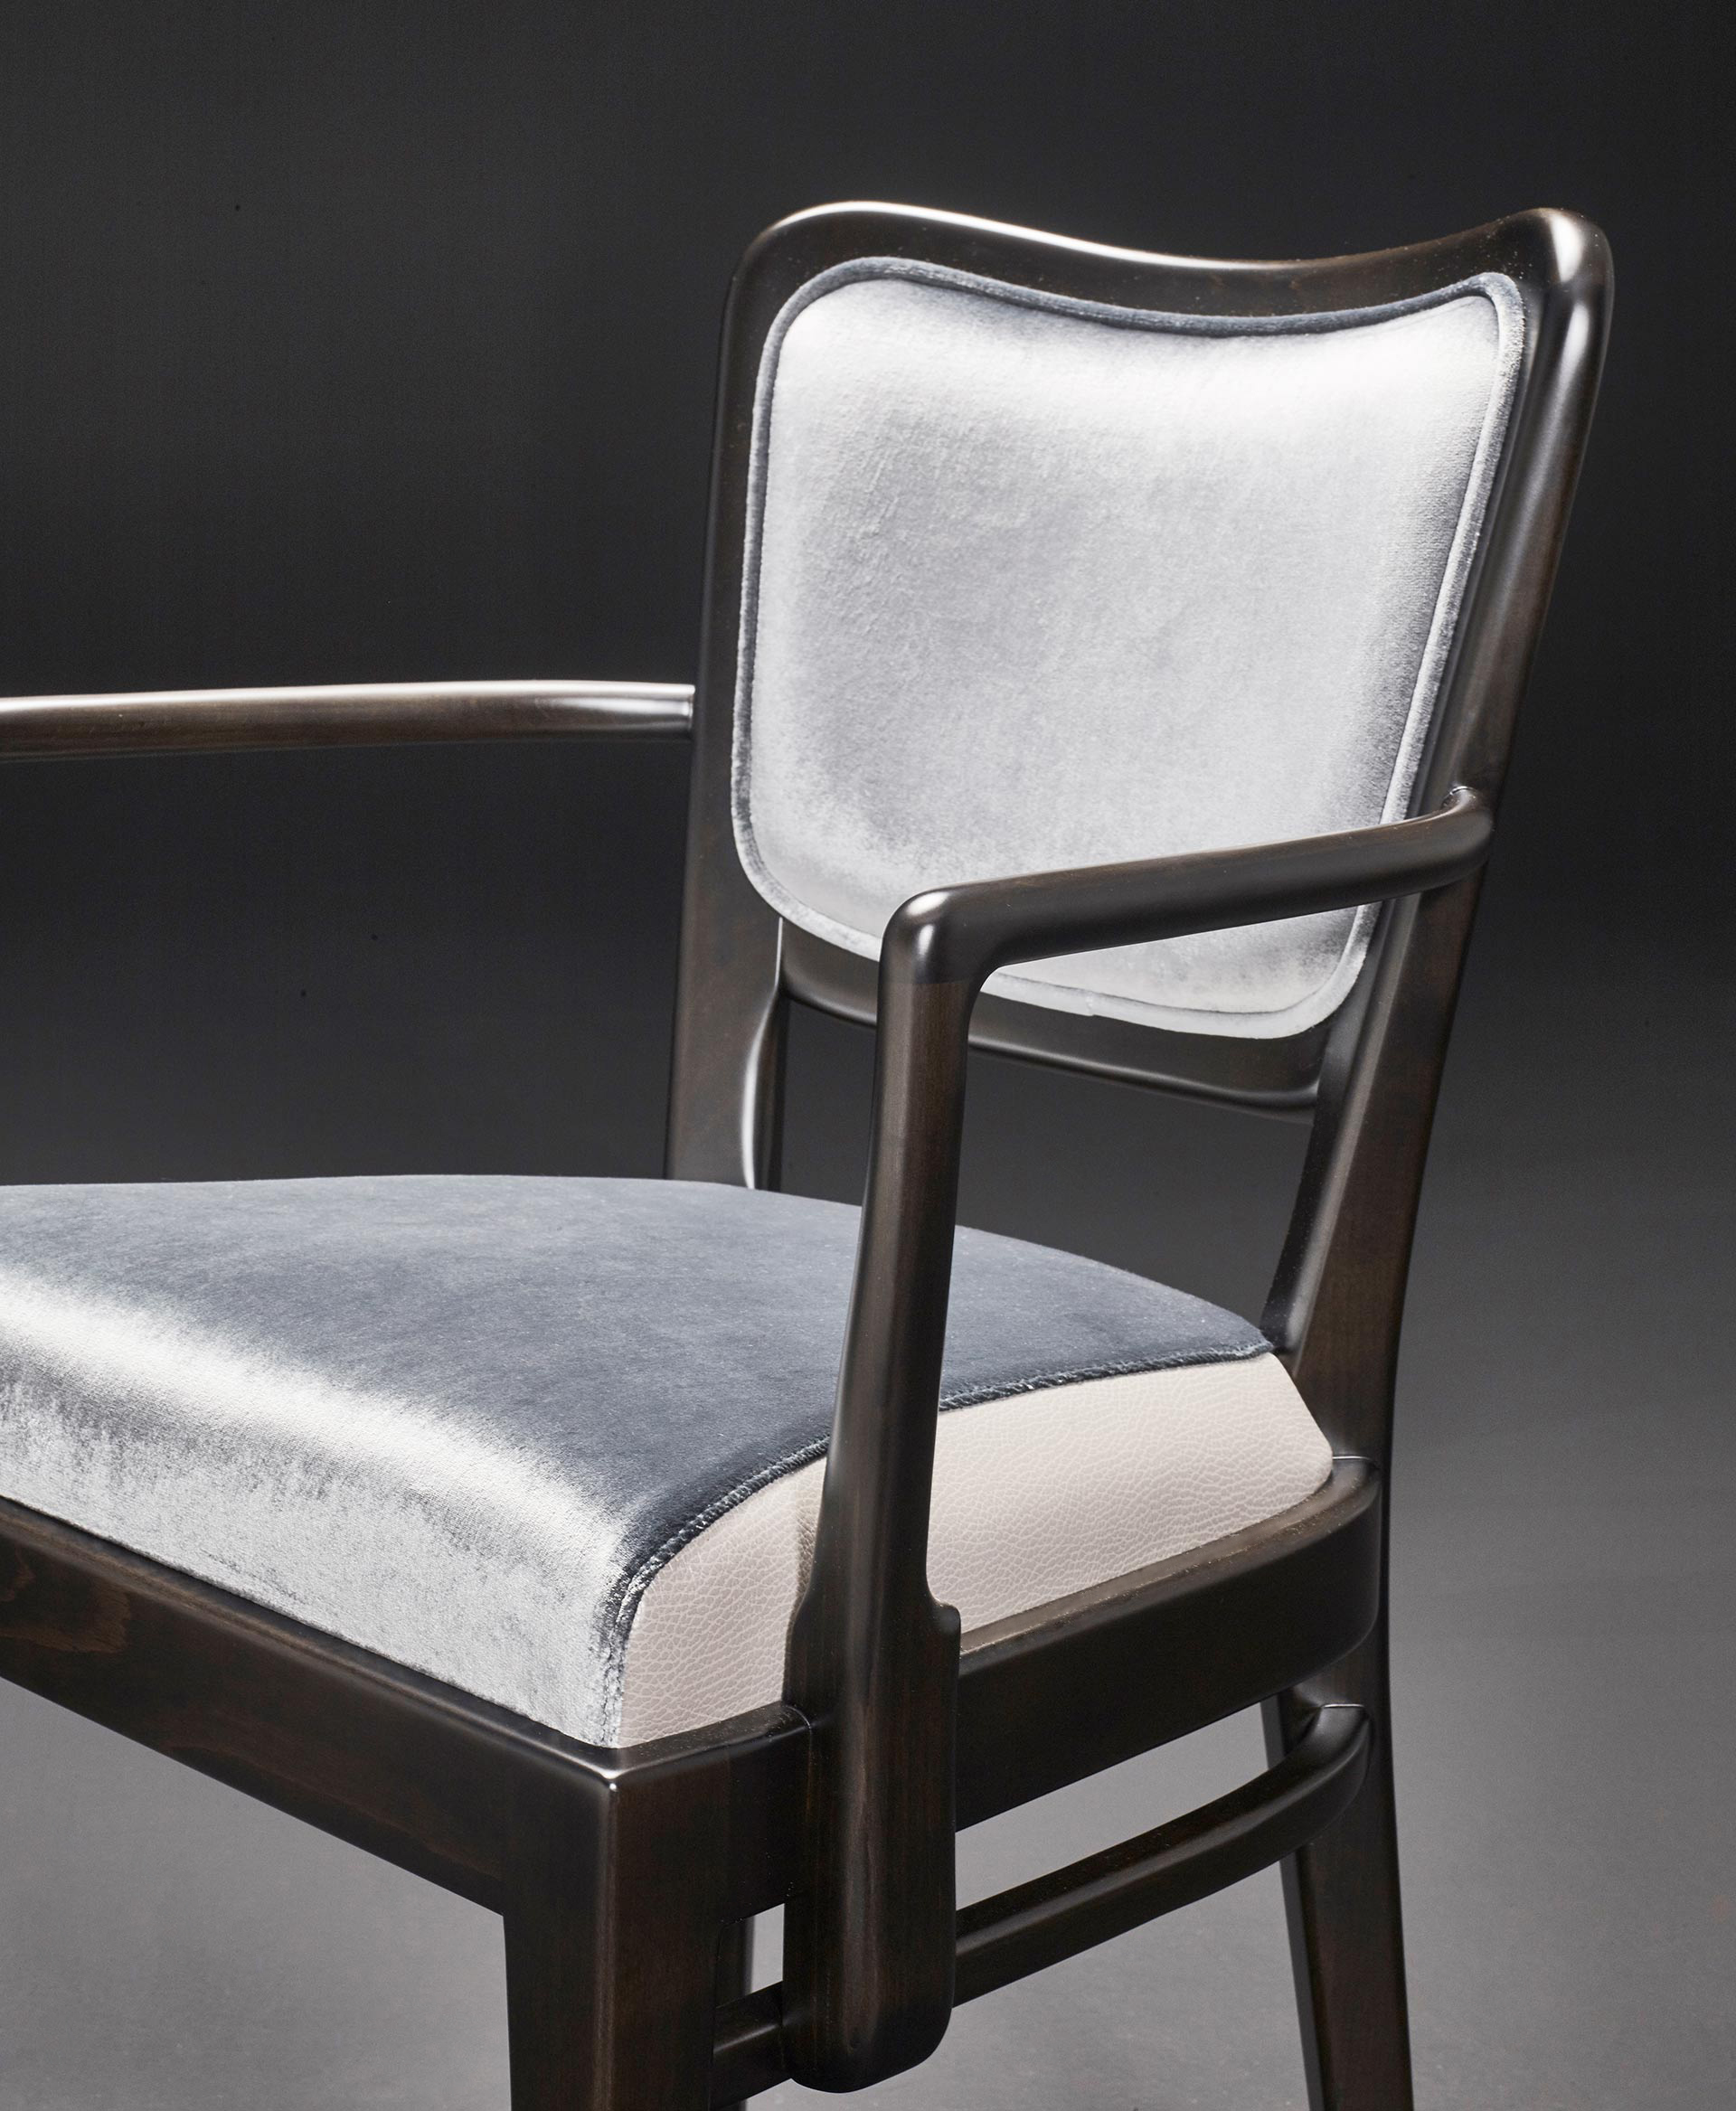 Detail of Pepita, a wooden dining chair with fabric or leather seat, from Promemoria's catalogue | Promemoria